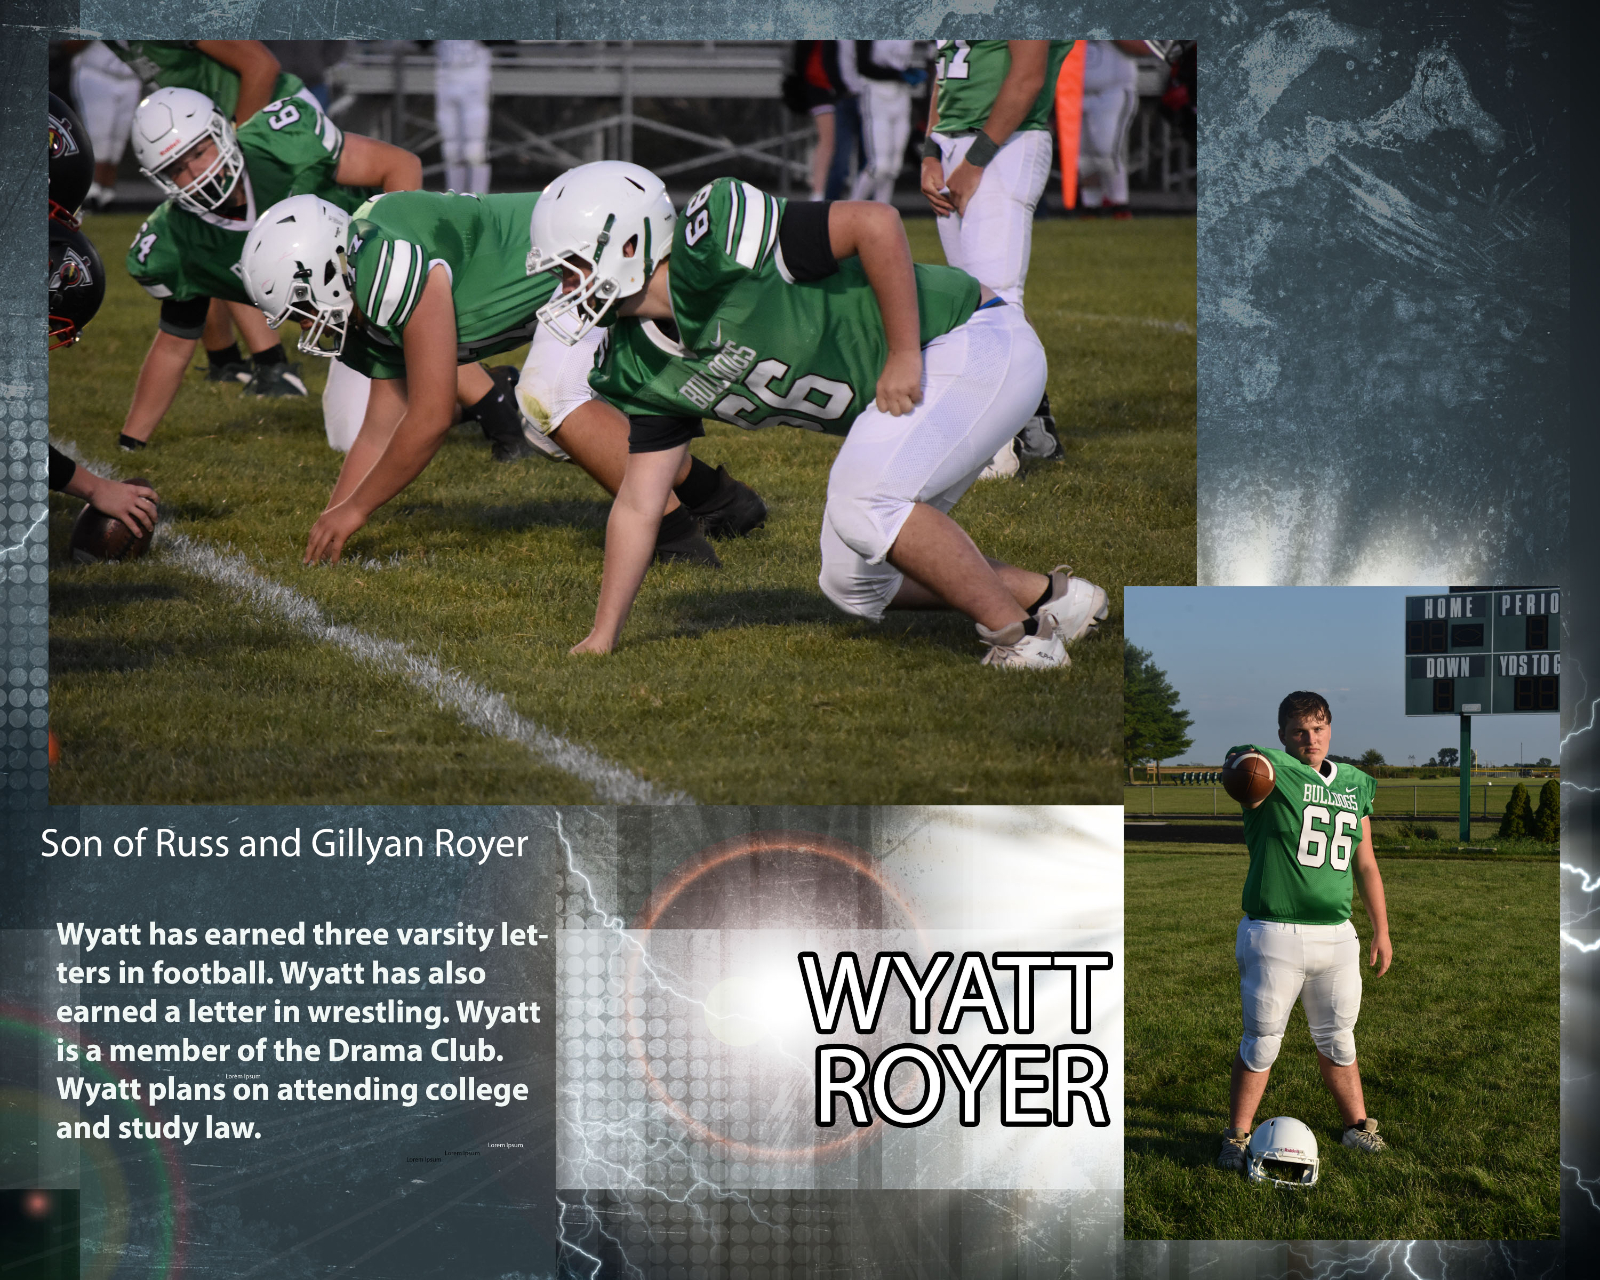 Senior Football Player – Wyatt Royer